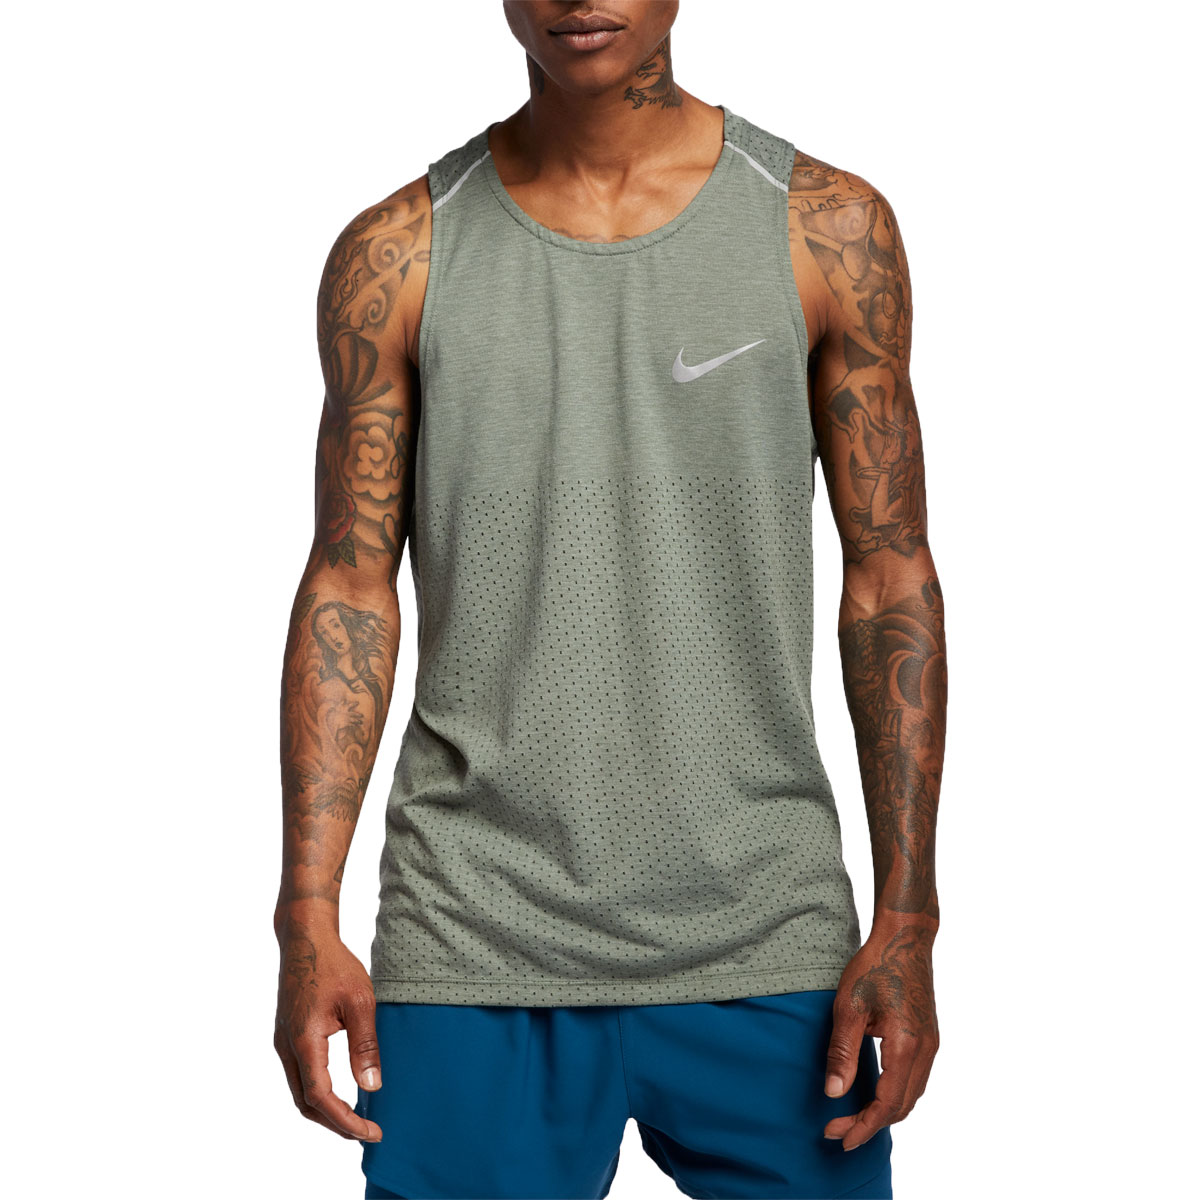 Men's Nike Breathe Rise 365 Tank  - Color: Juniper Fog/Heather - Size: XL, Juniper Fog/Heather, large, image 1